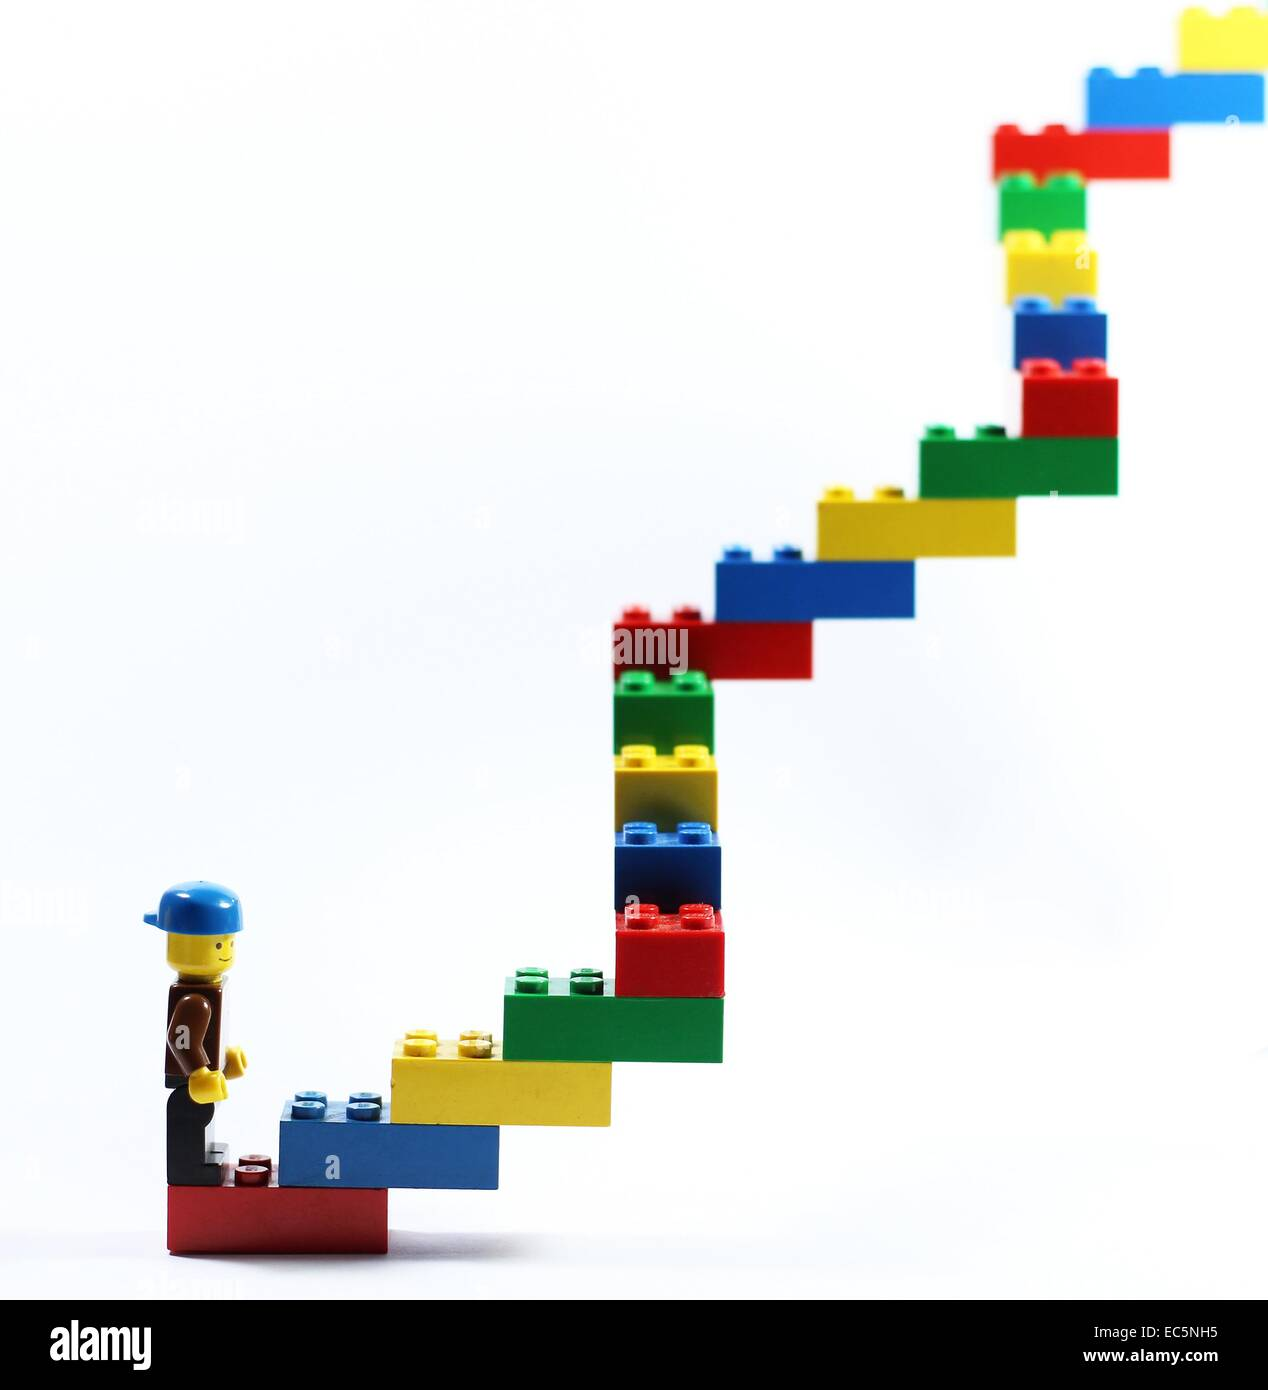 Lego figure and lego stairs. - Stock Image